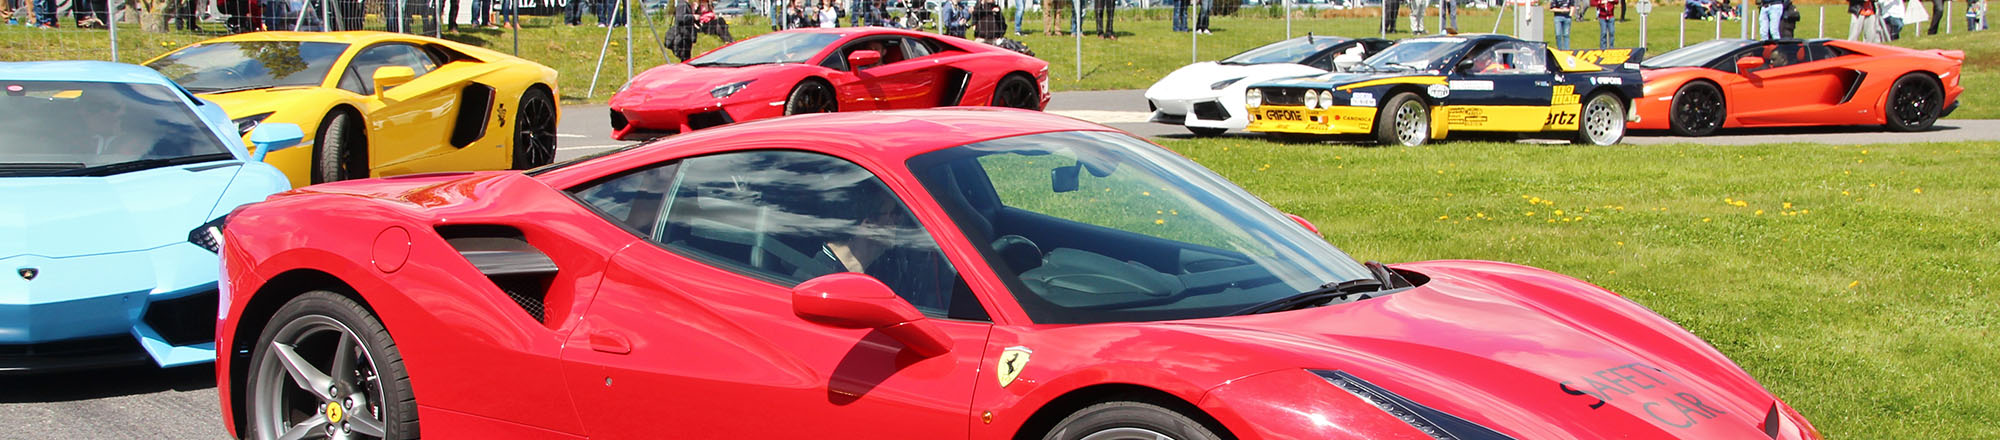 Auto italia MBW car line up slider.jpg